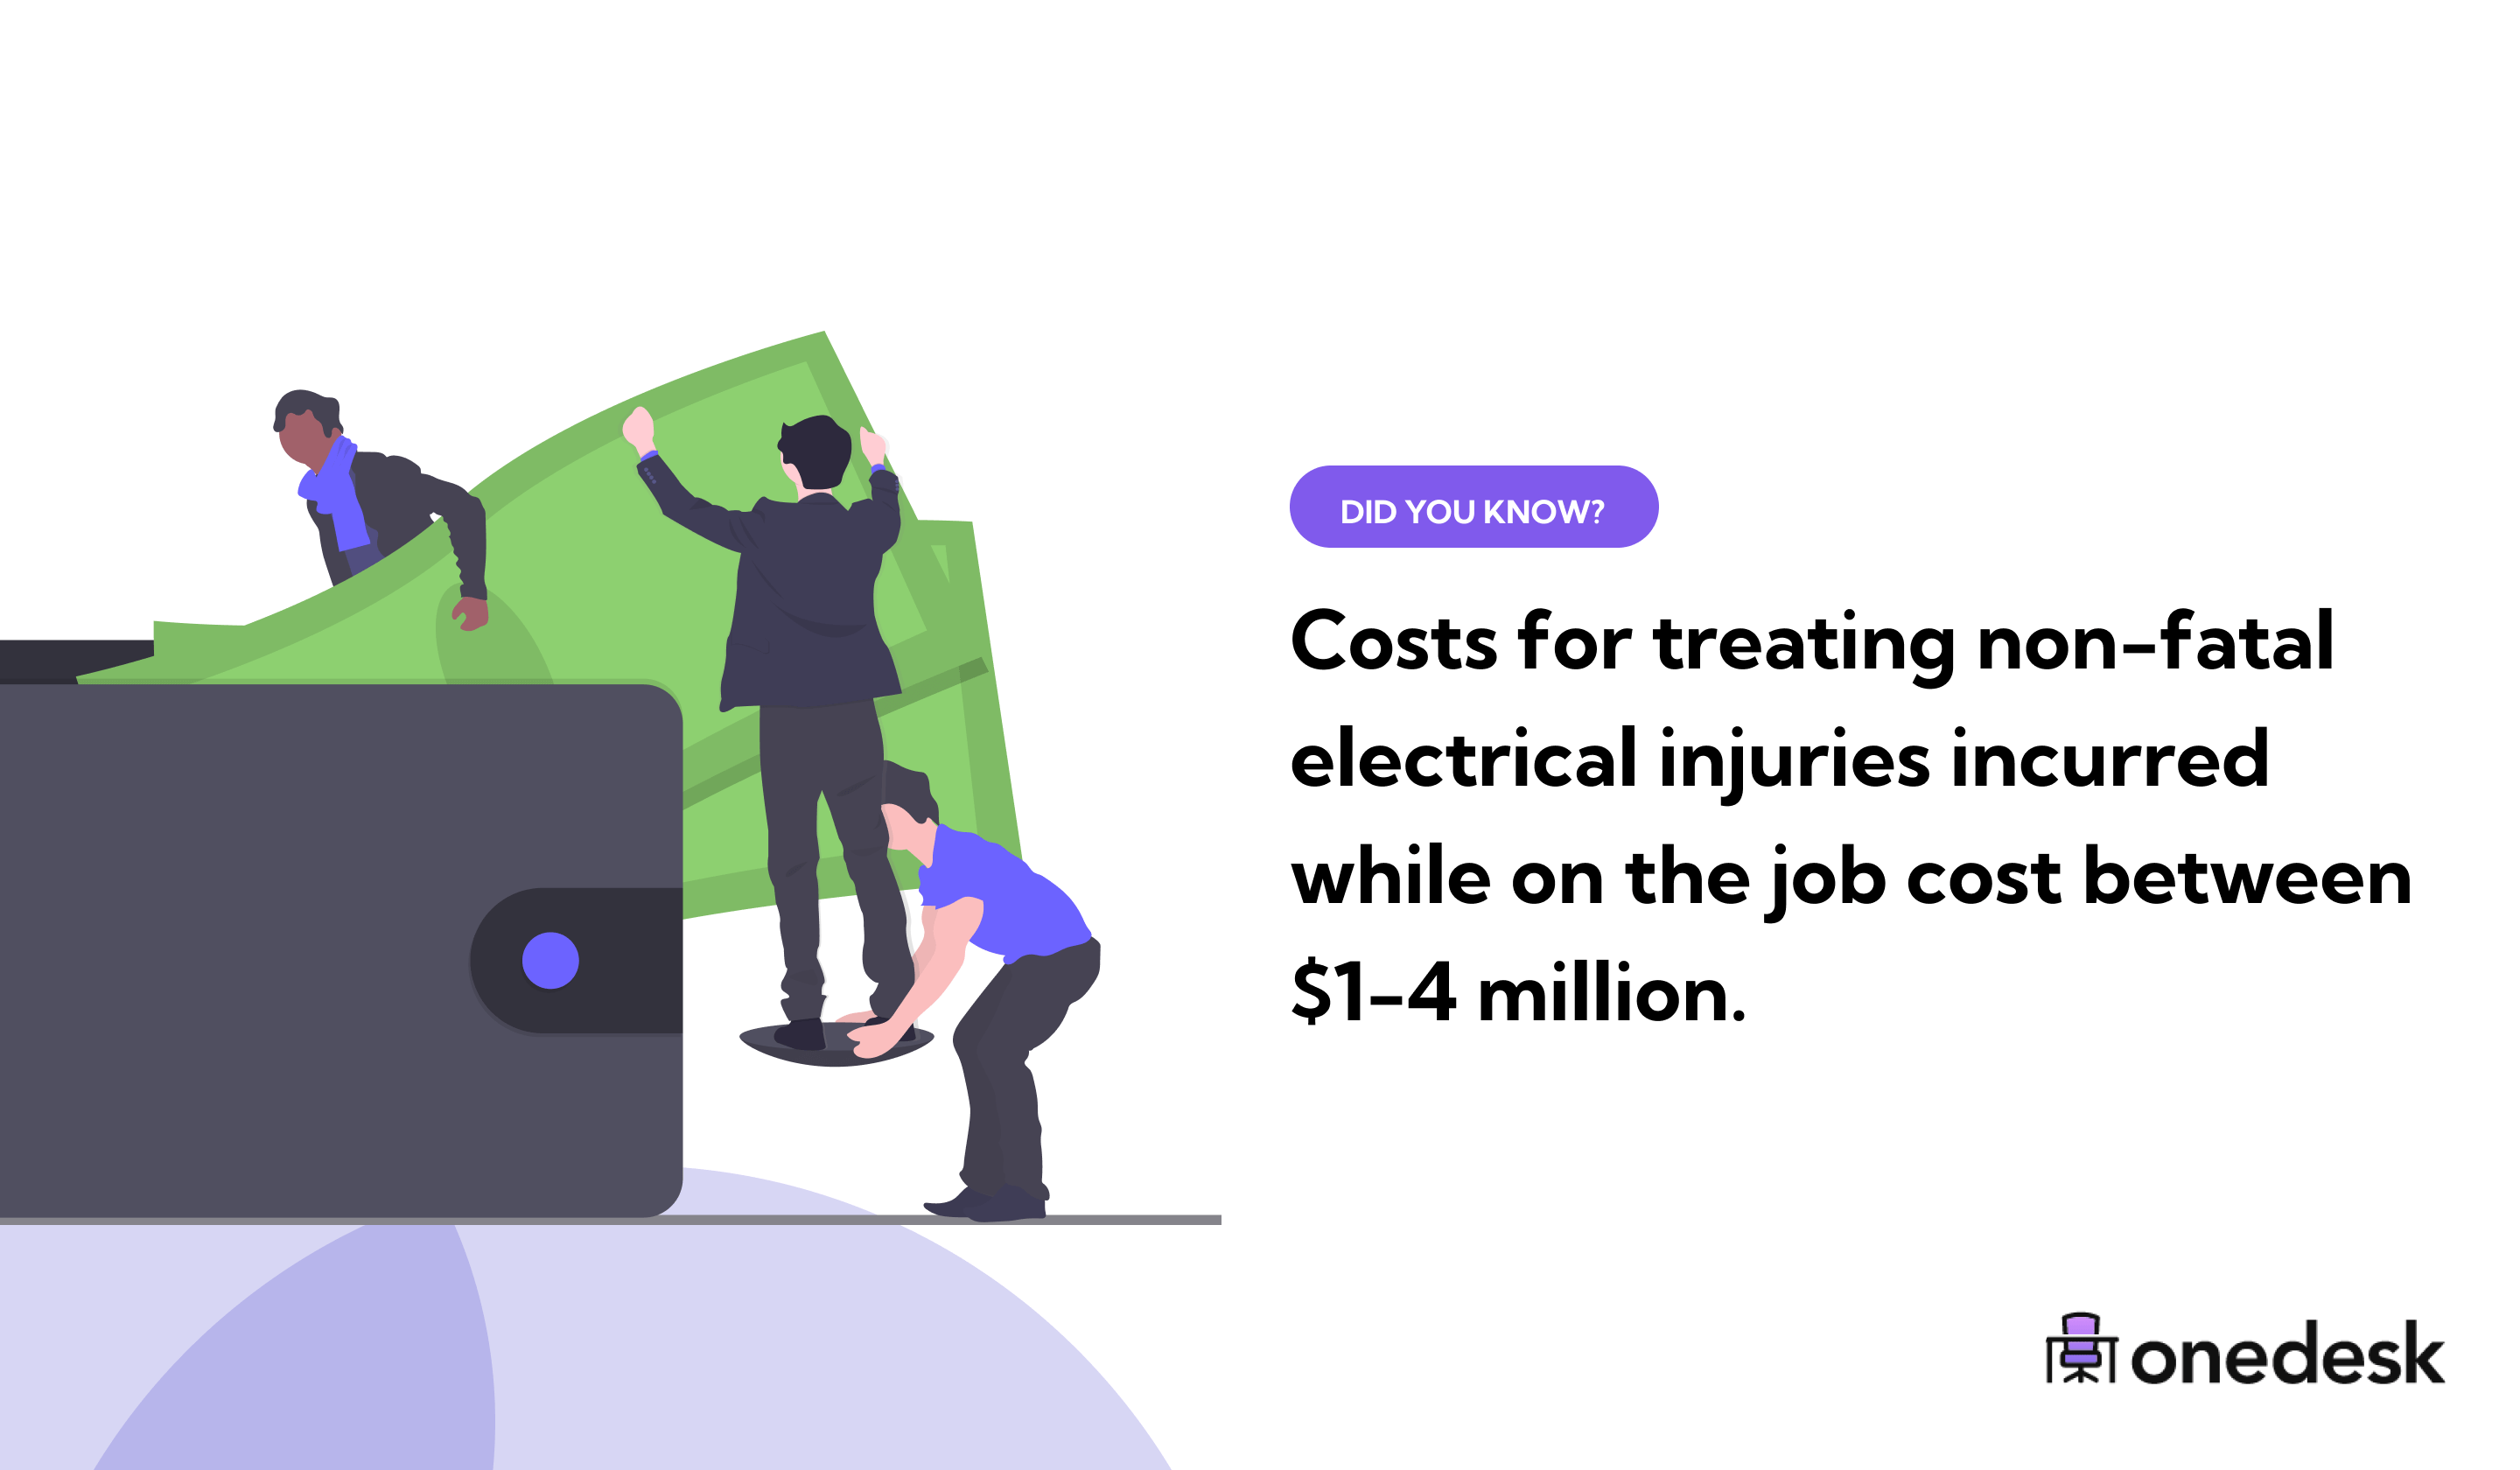 costs for treating non-fatal electrical injuries